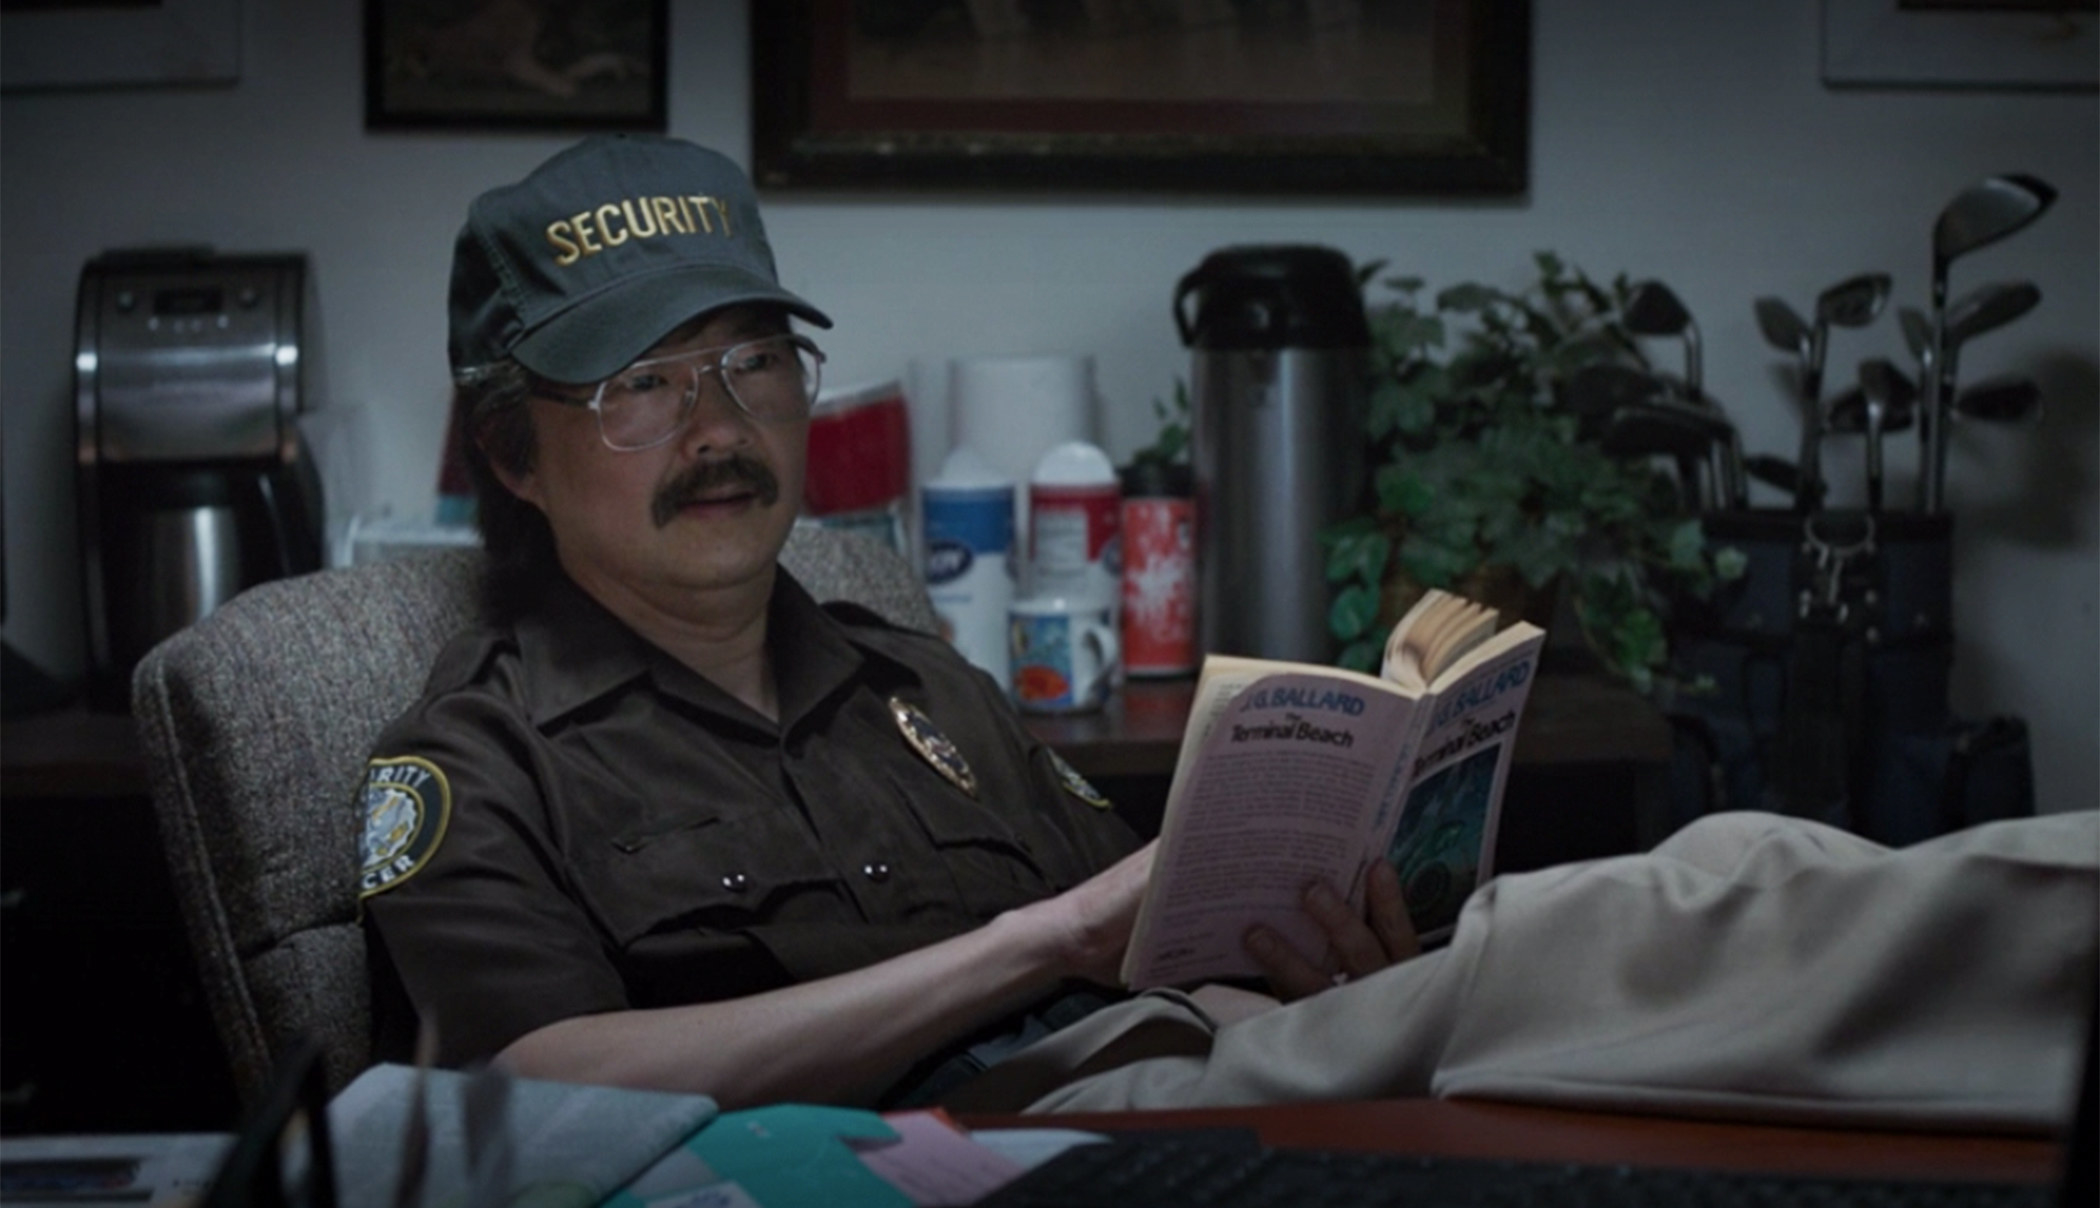 He played a very chill guard who read at his desk